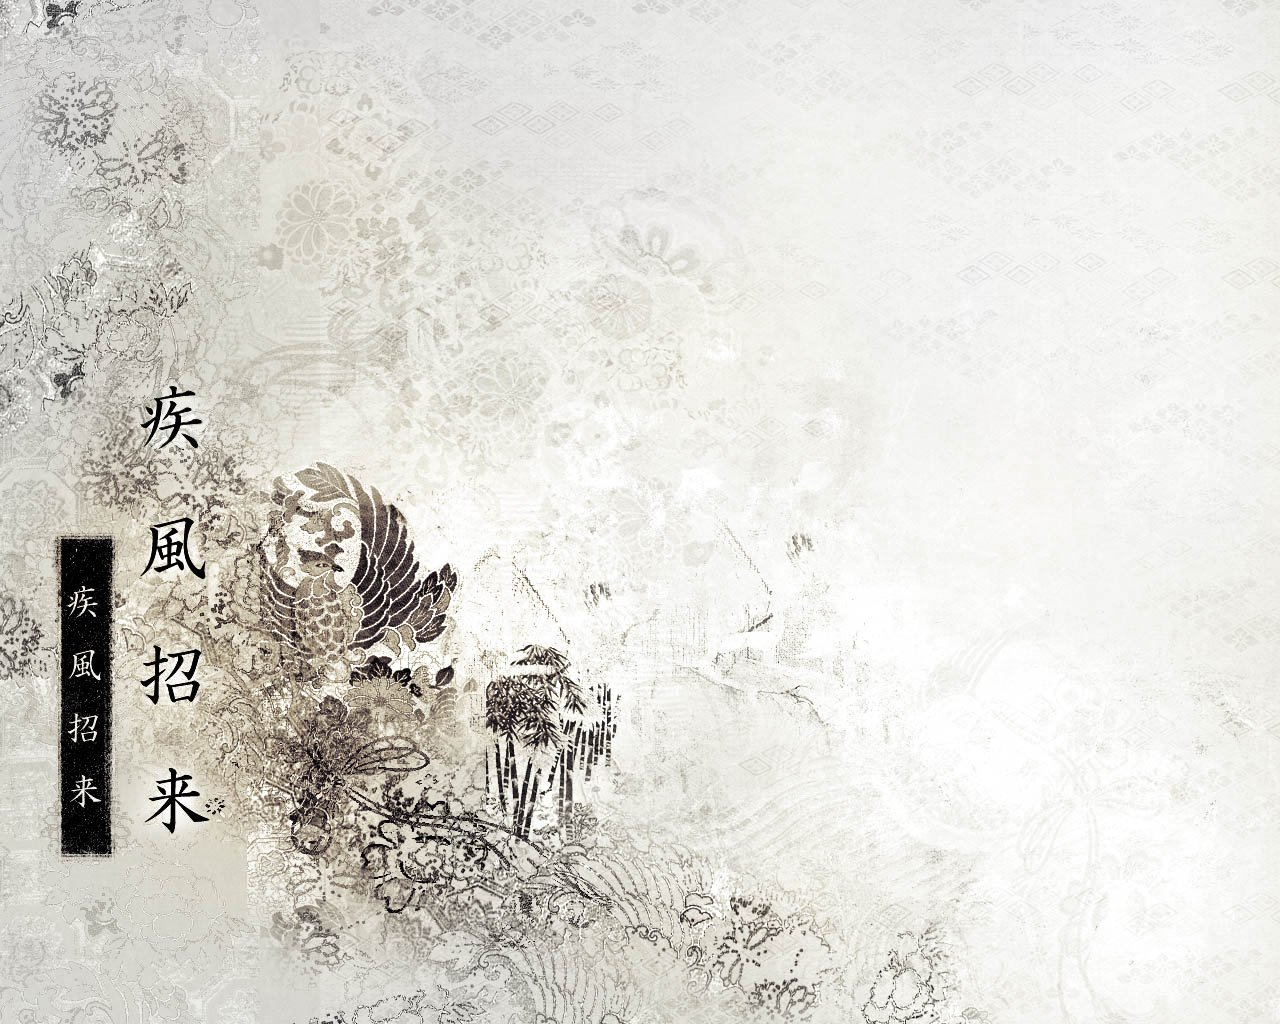 Traditional Japanese Art Wallpaper Images Pictures   Becuo 1280x1024